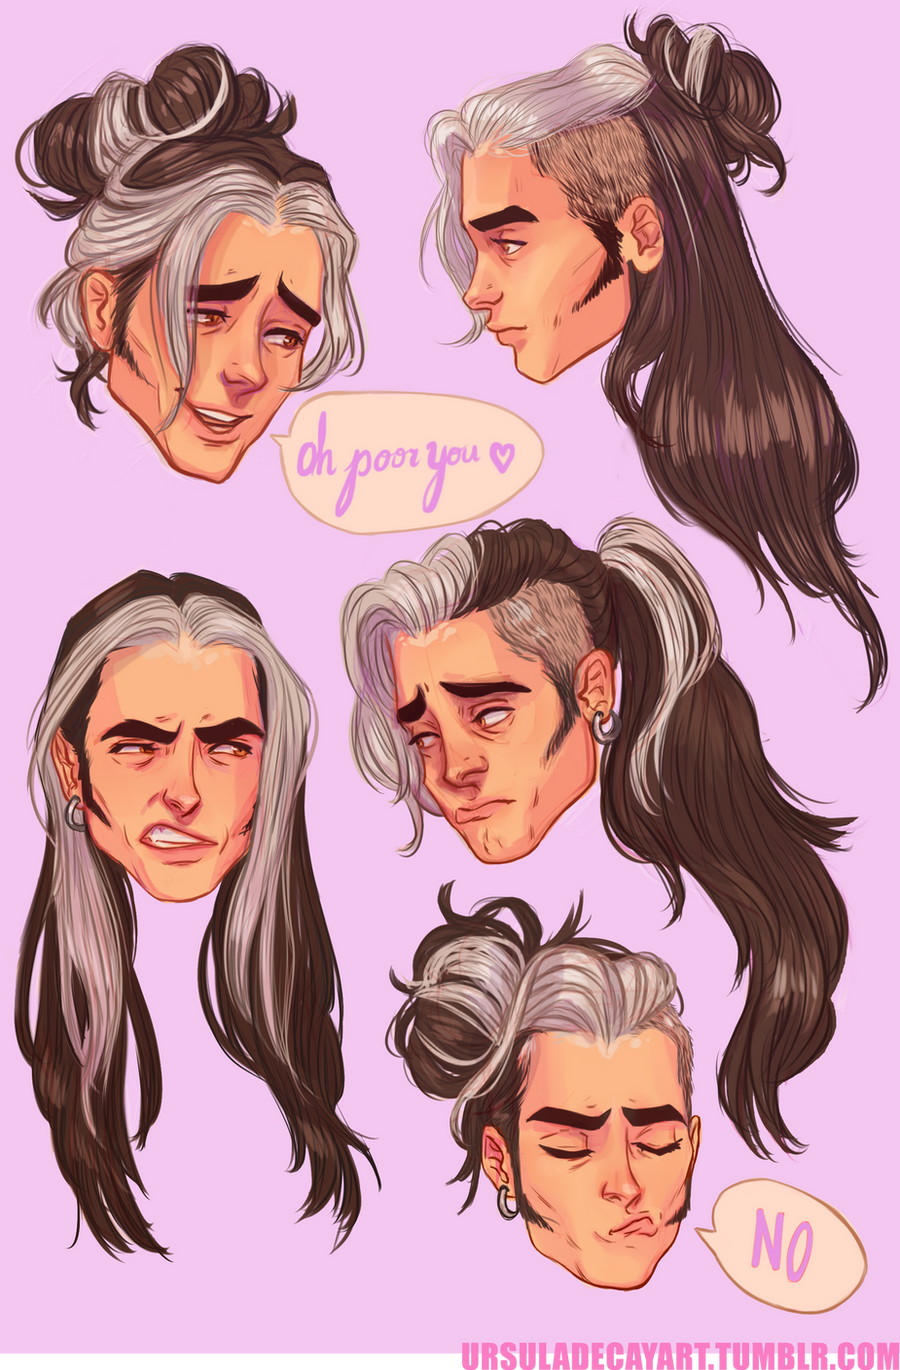 ollys hair by ursuladecay on deviantart